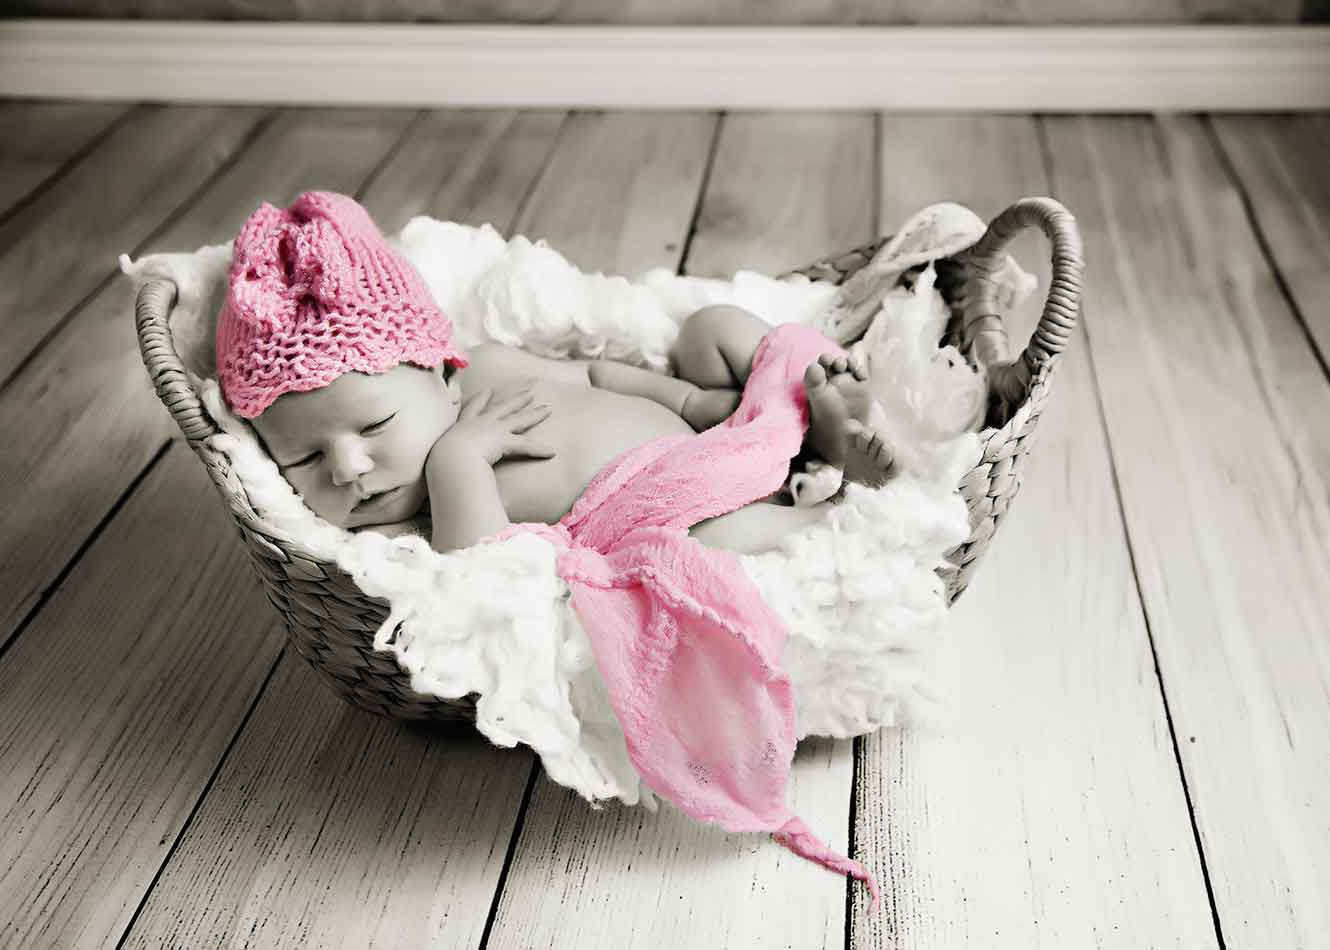 Baby in Basket.